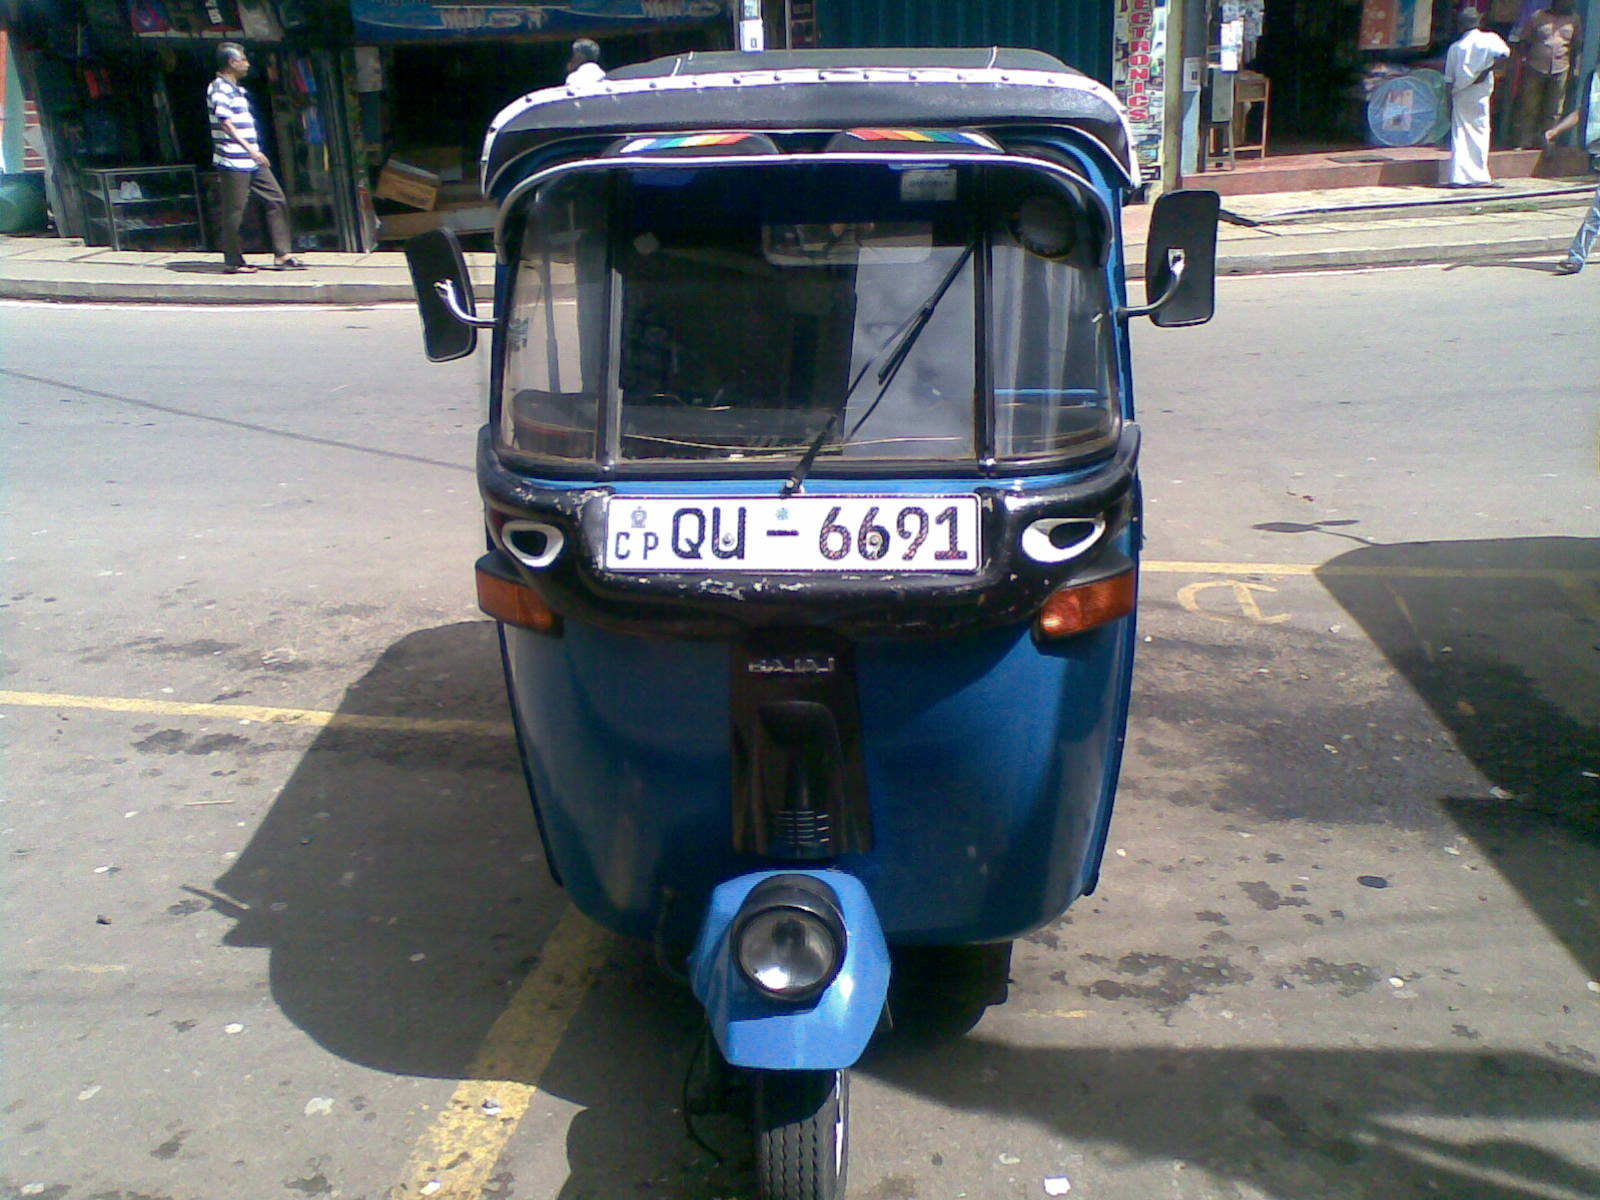 Ikman lk bikes for sale - Qu 6691 Bajaj 4st Three Wheeler Hand 85000 Leasing Available Per Month 9800 34 Exchange Can Be Possible Small Bike Cash